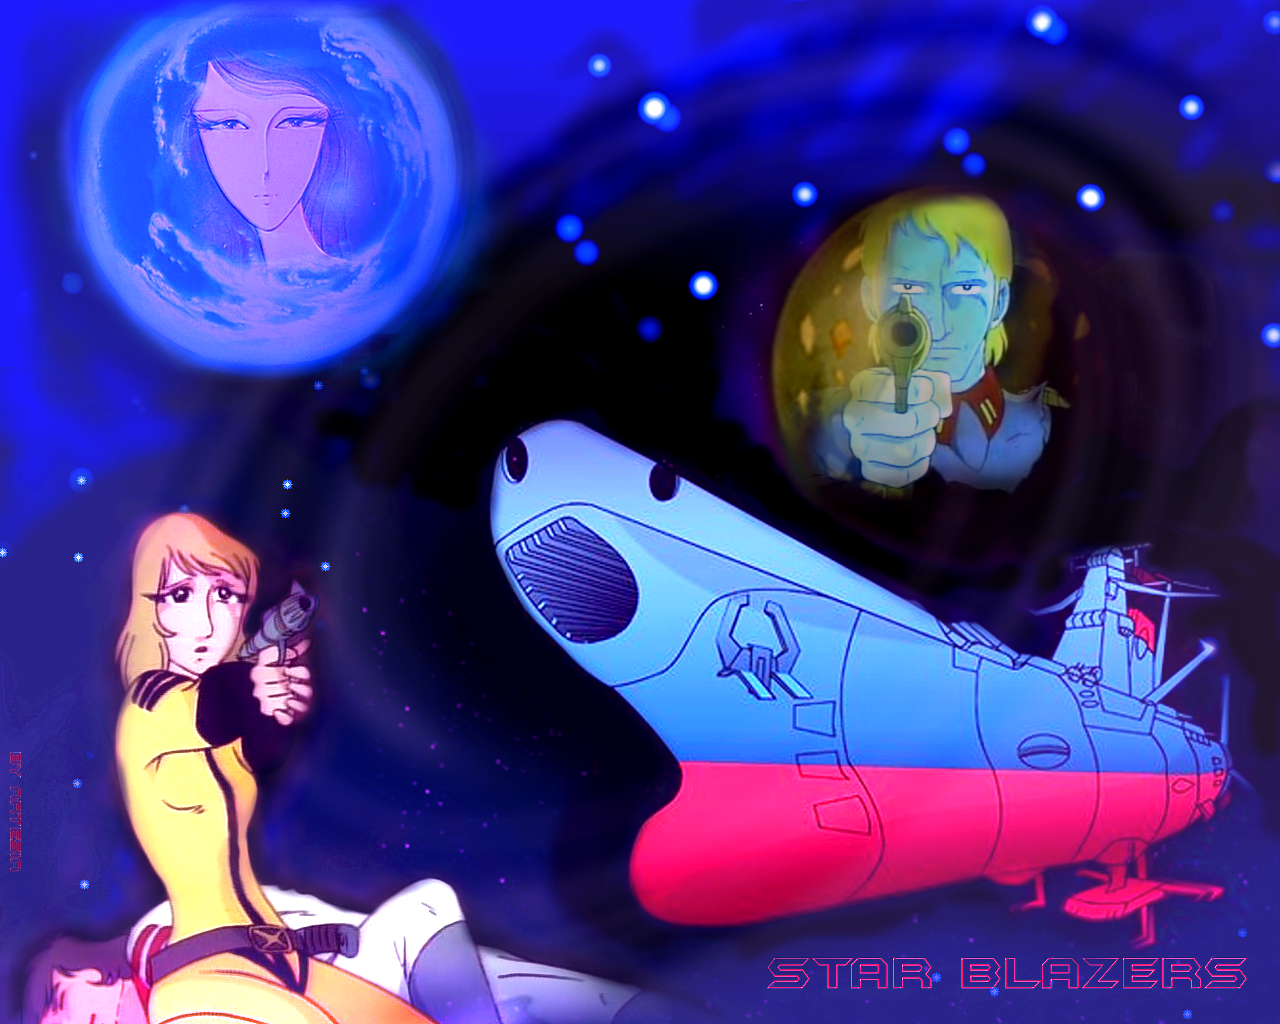 Star Blazers Stories - Anime Wallpaper (34710491) - Fanpop